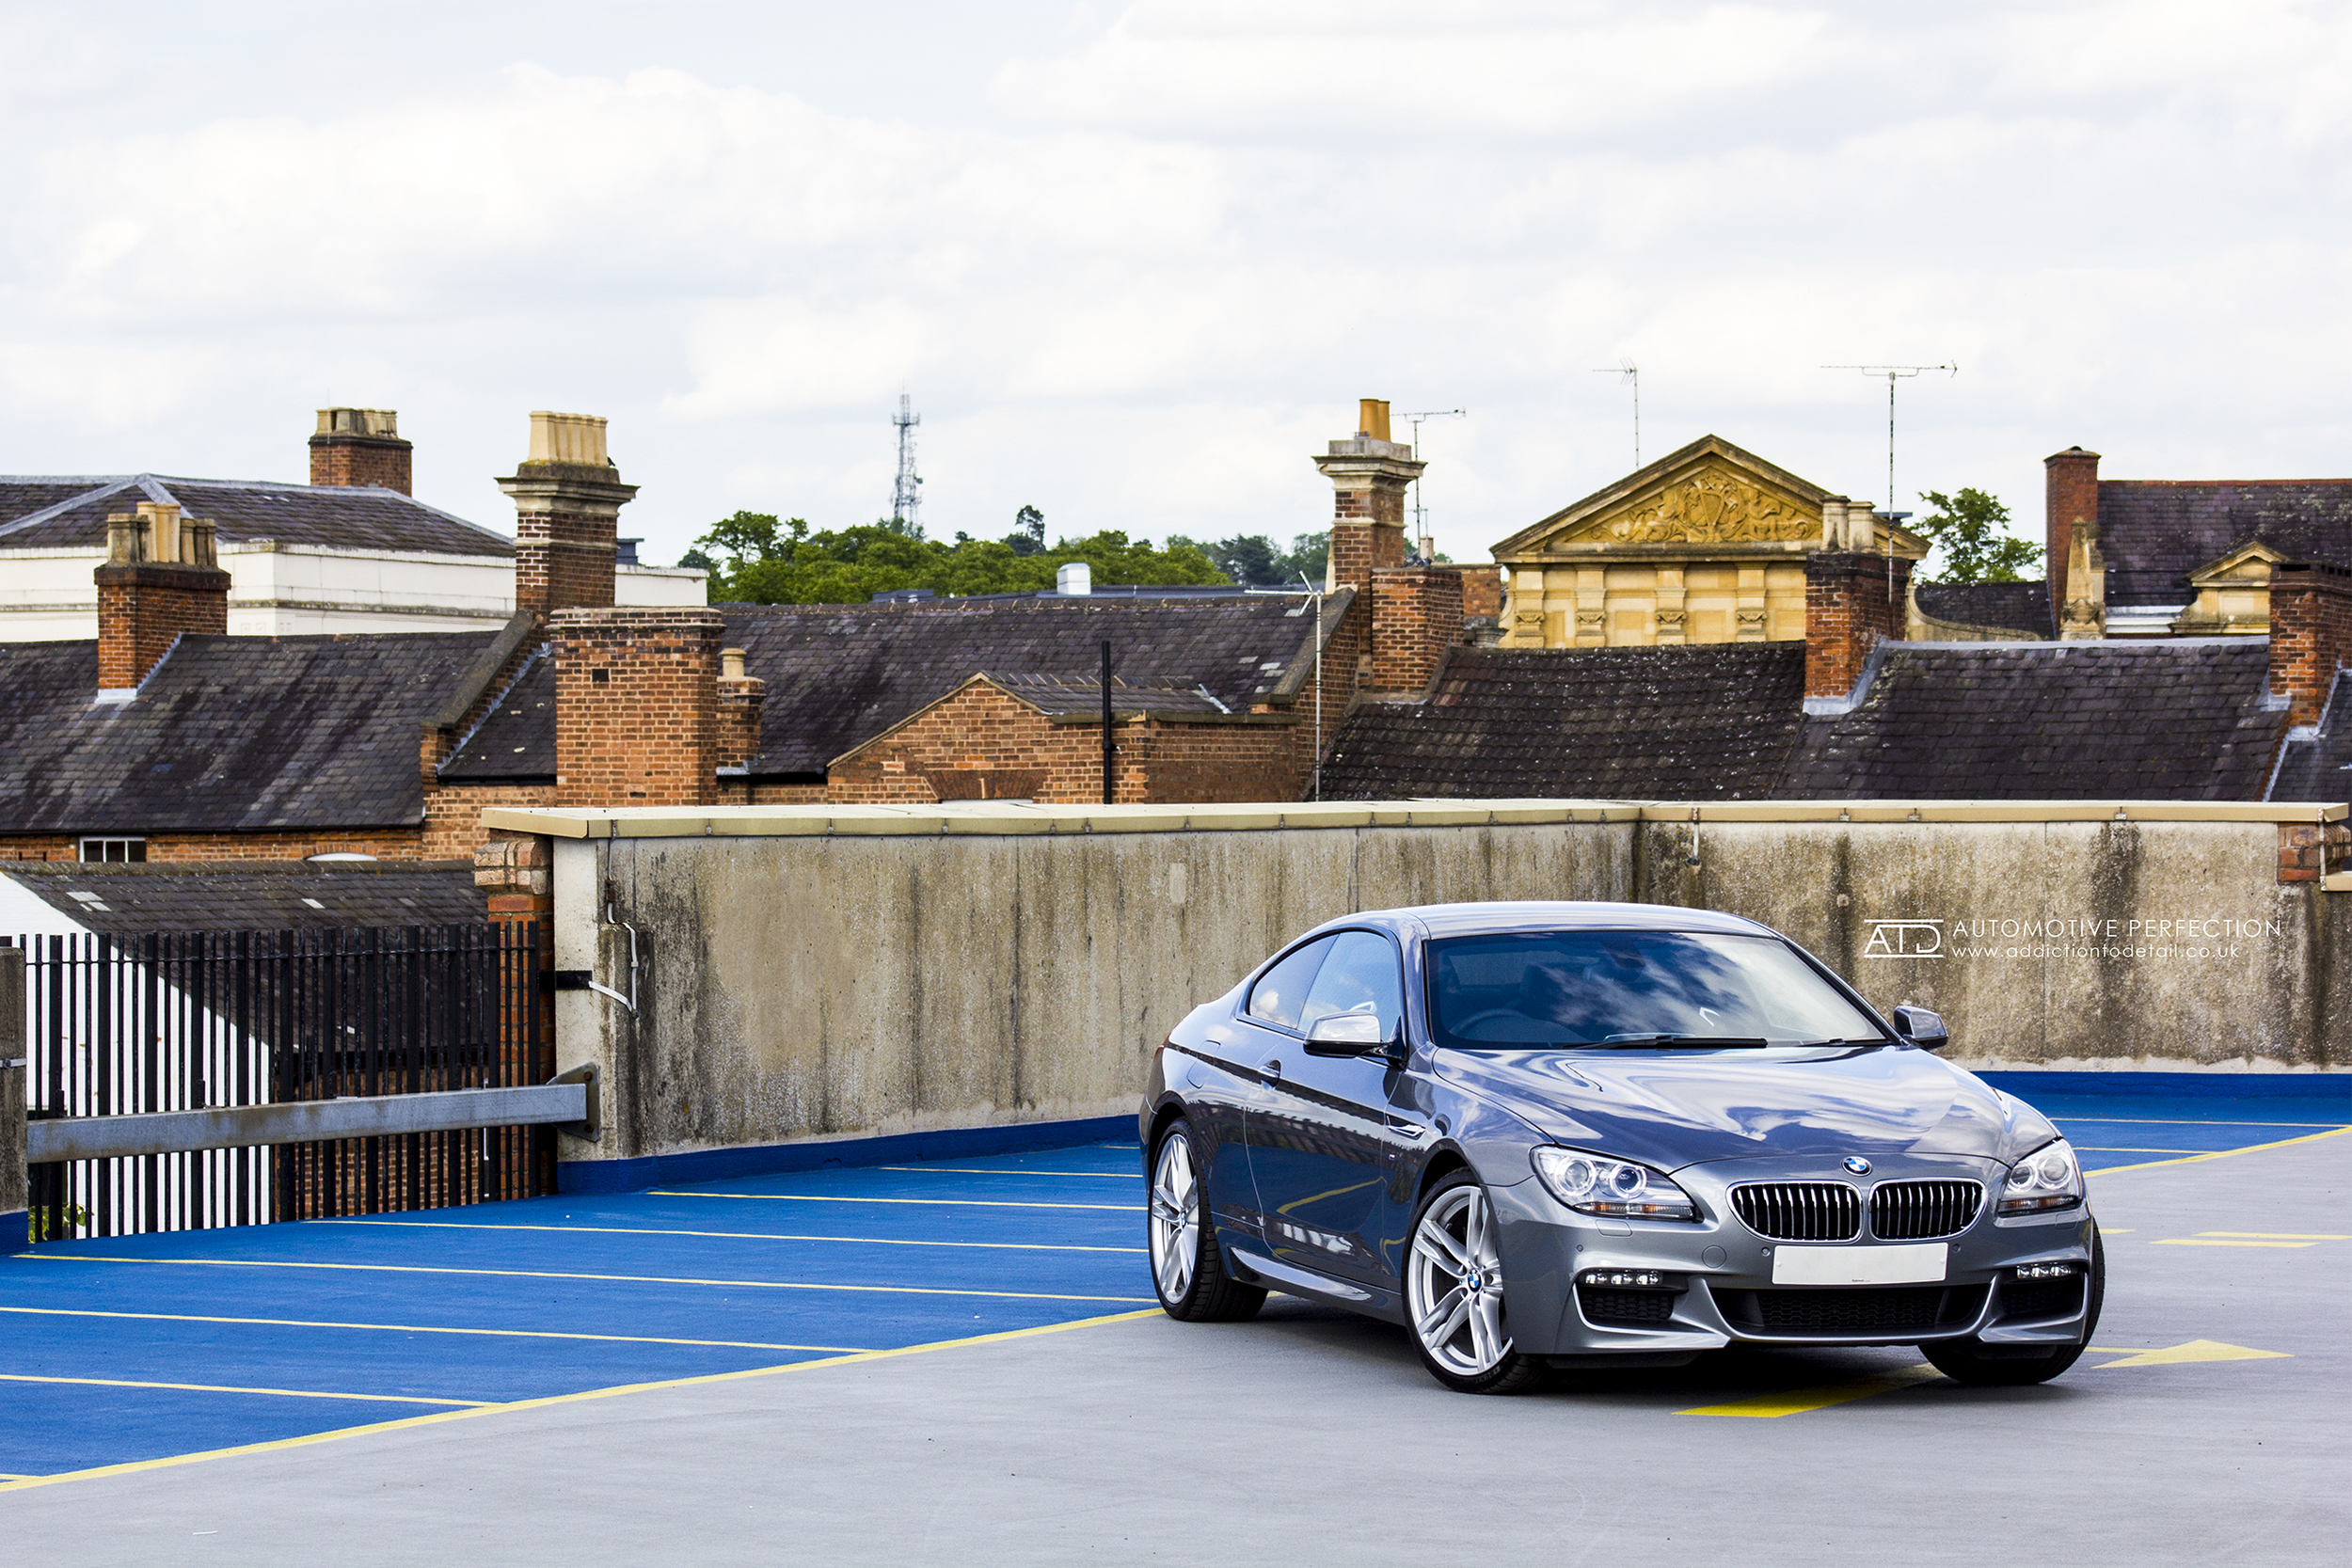 640D_Coupe_Photoshoot__0016_Image_018.jpg